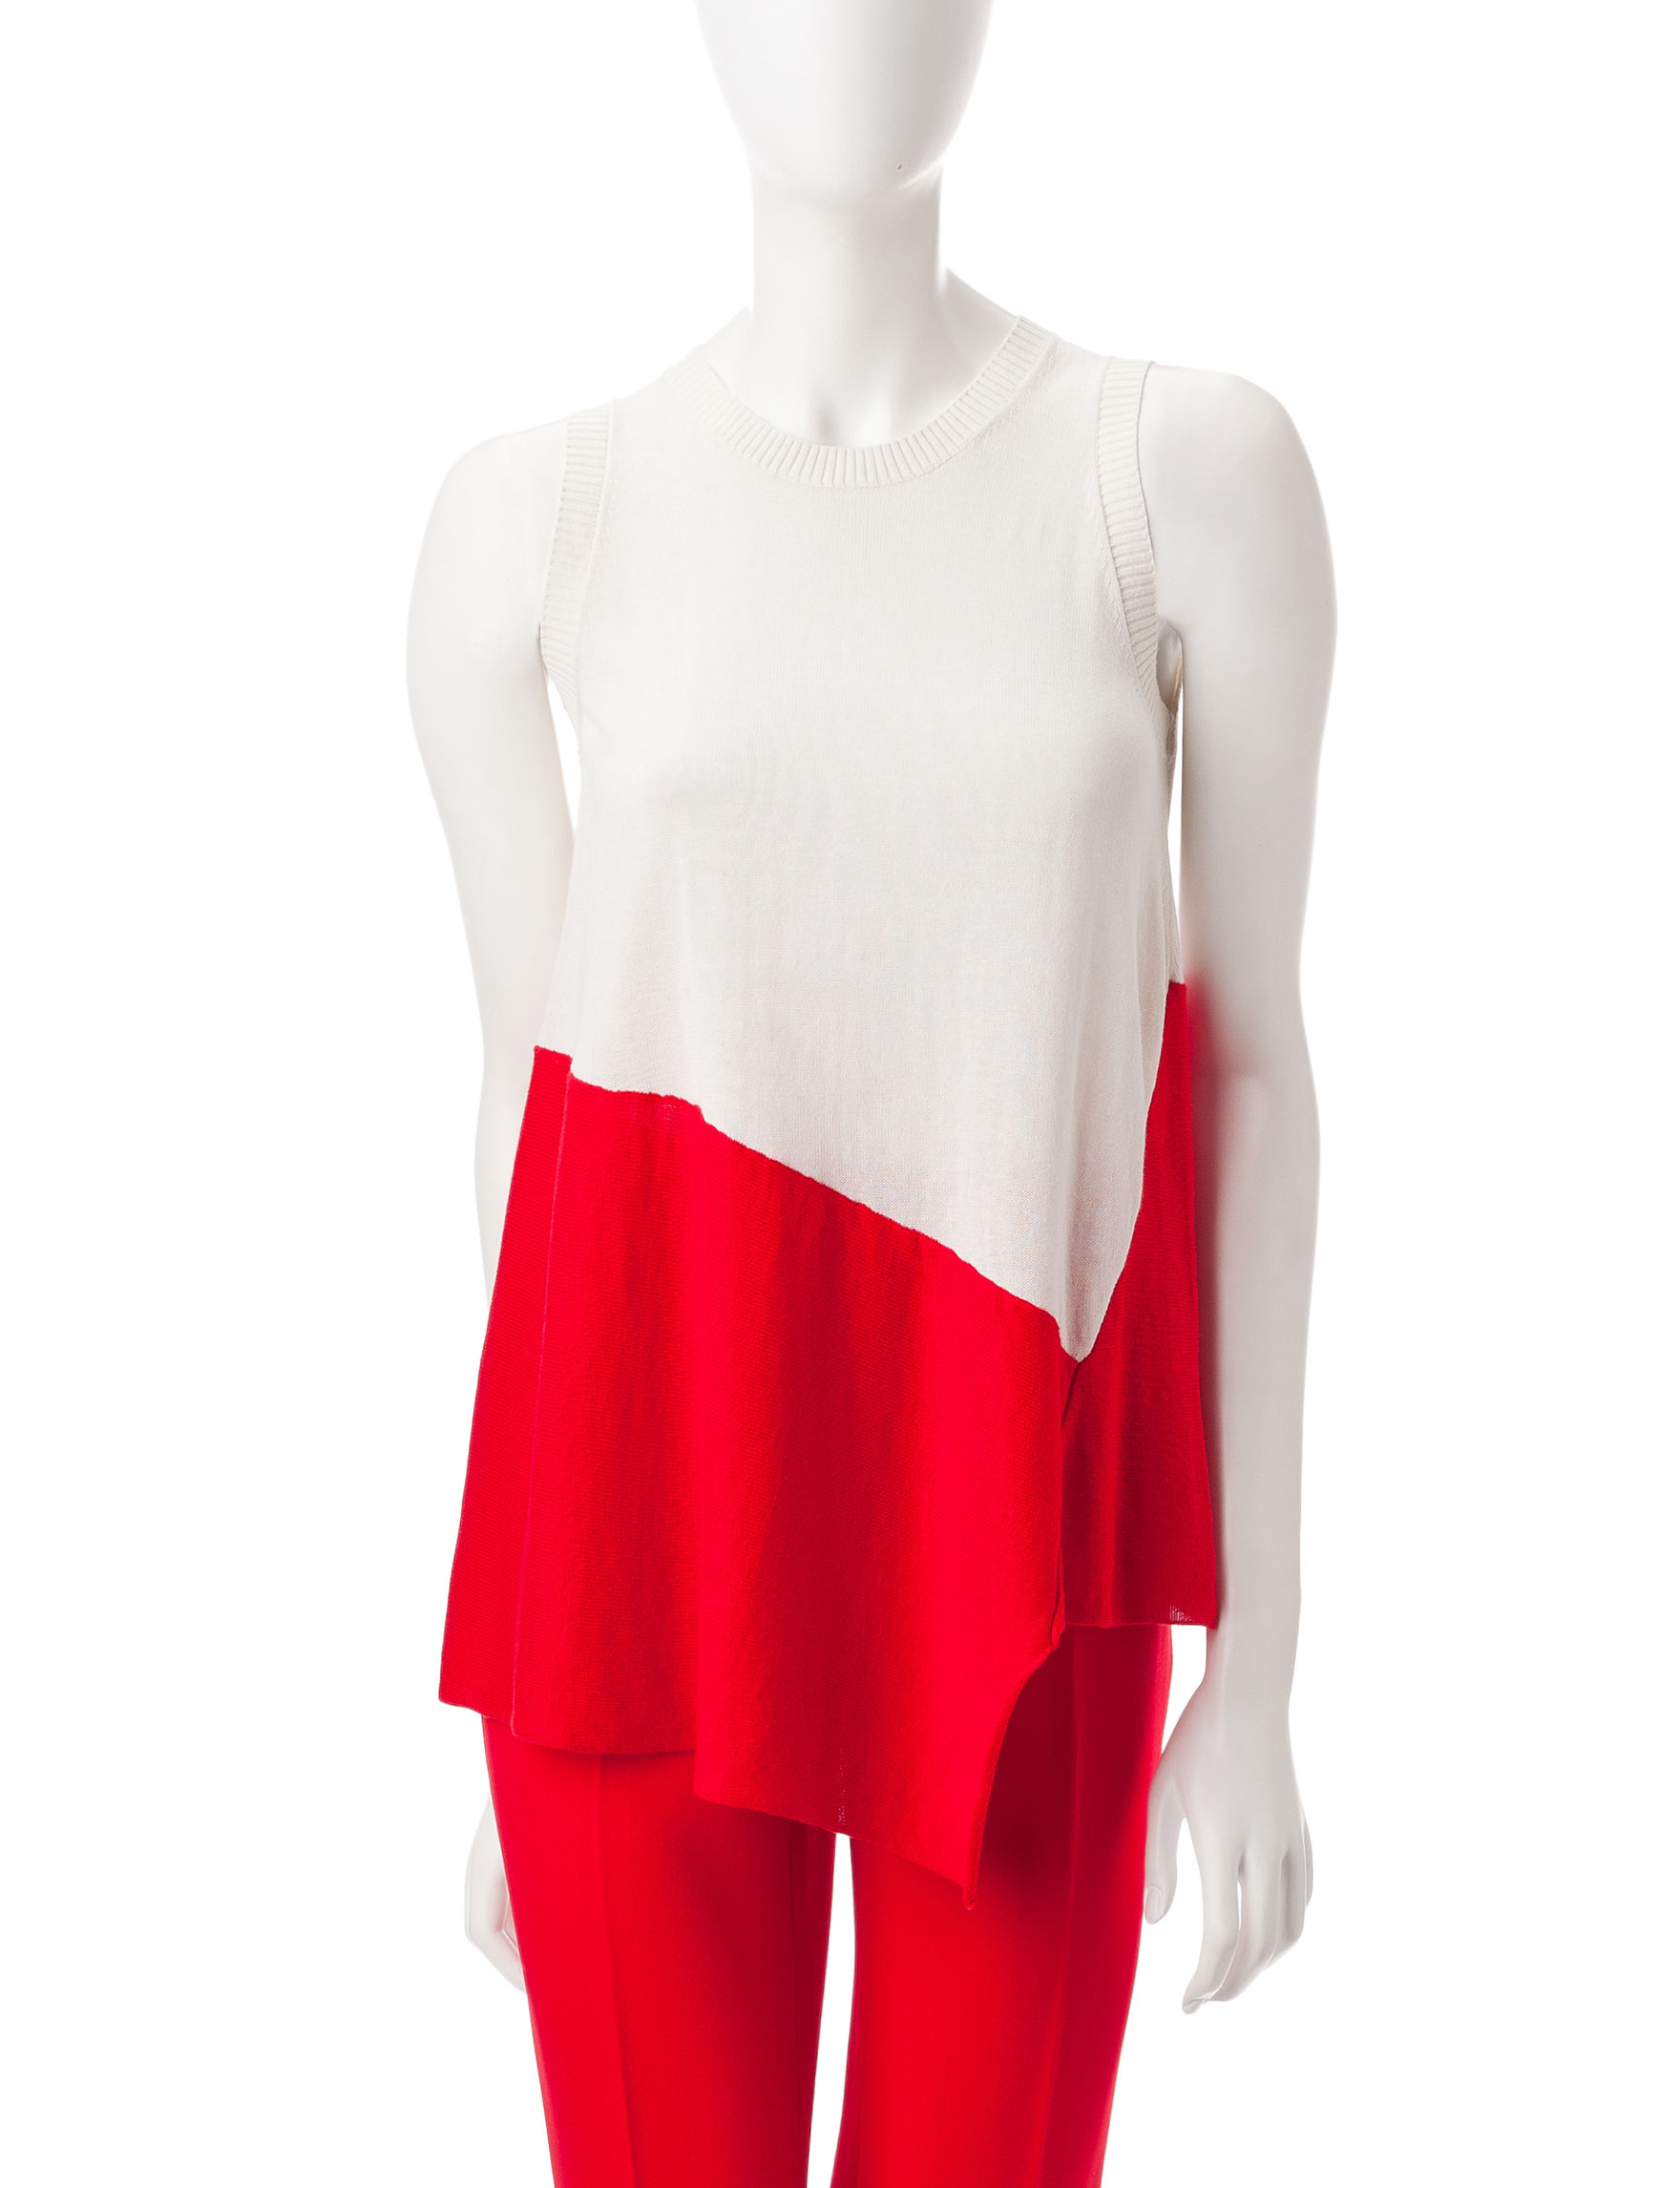 Anne Klein Red / White Pull-overs Shirts & Blouses Sweaters